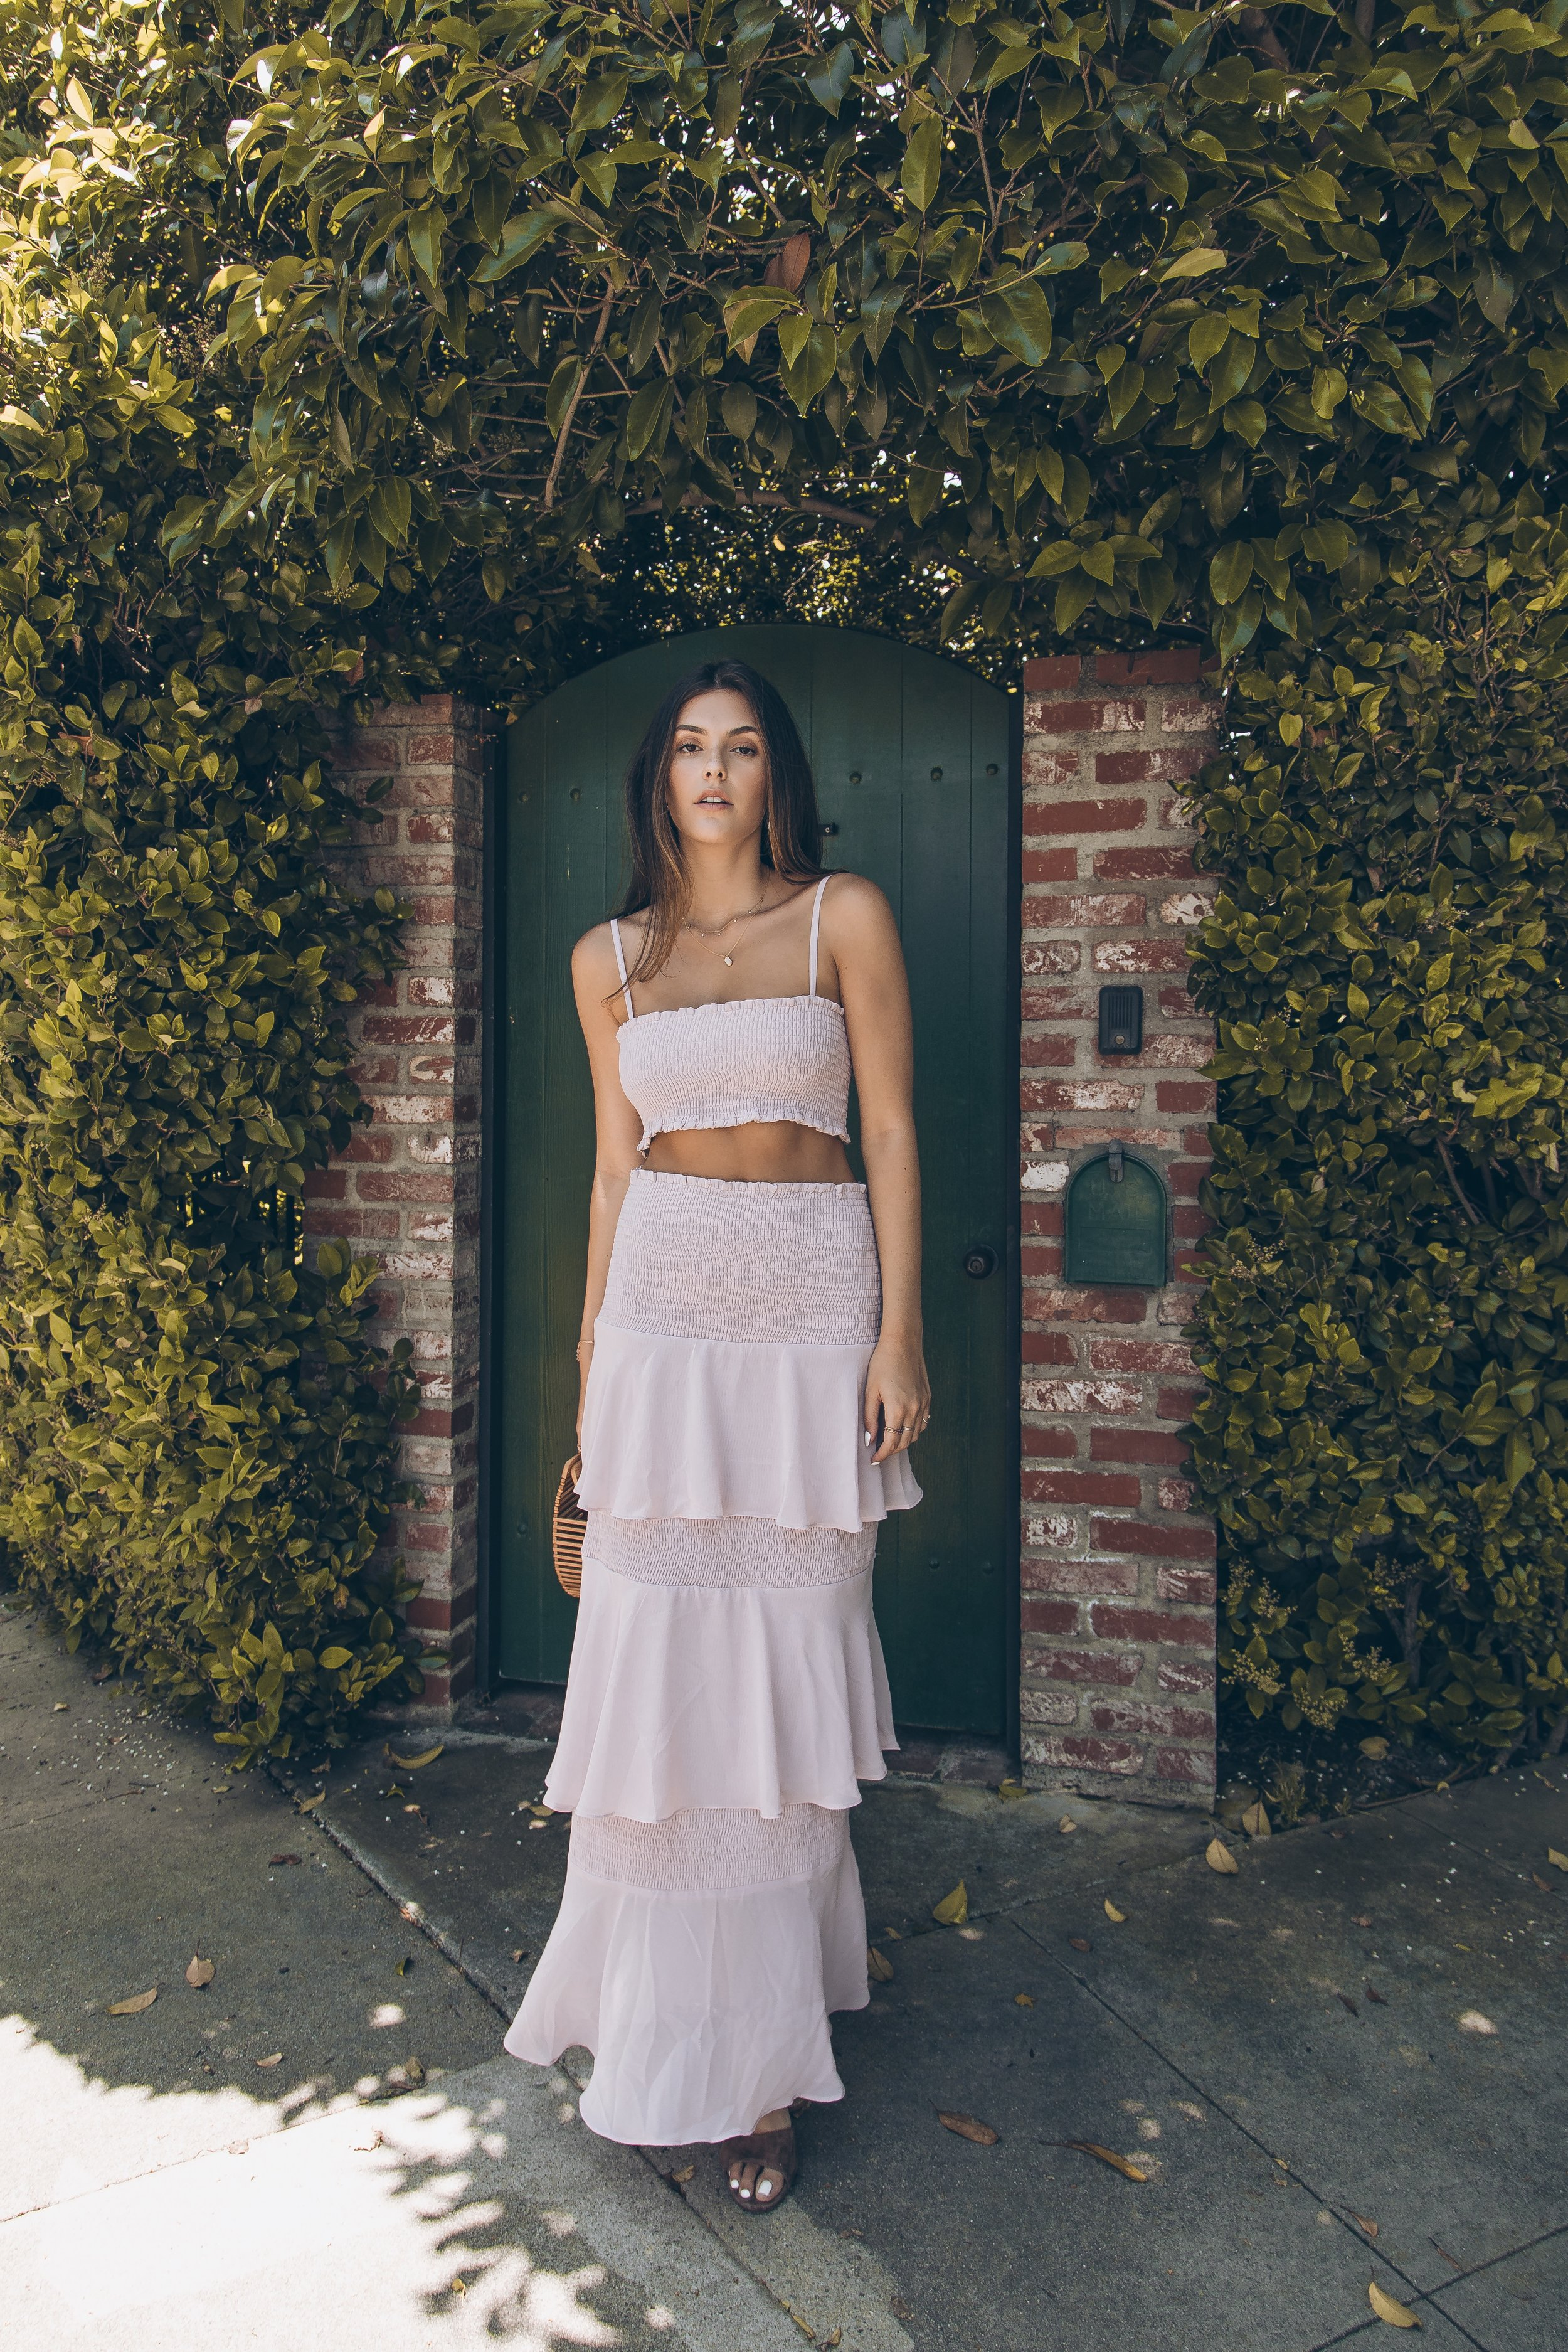 3 Sustainable Fashion Brands To Try This Summer